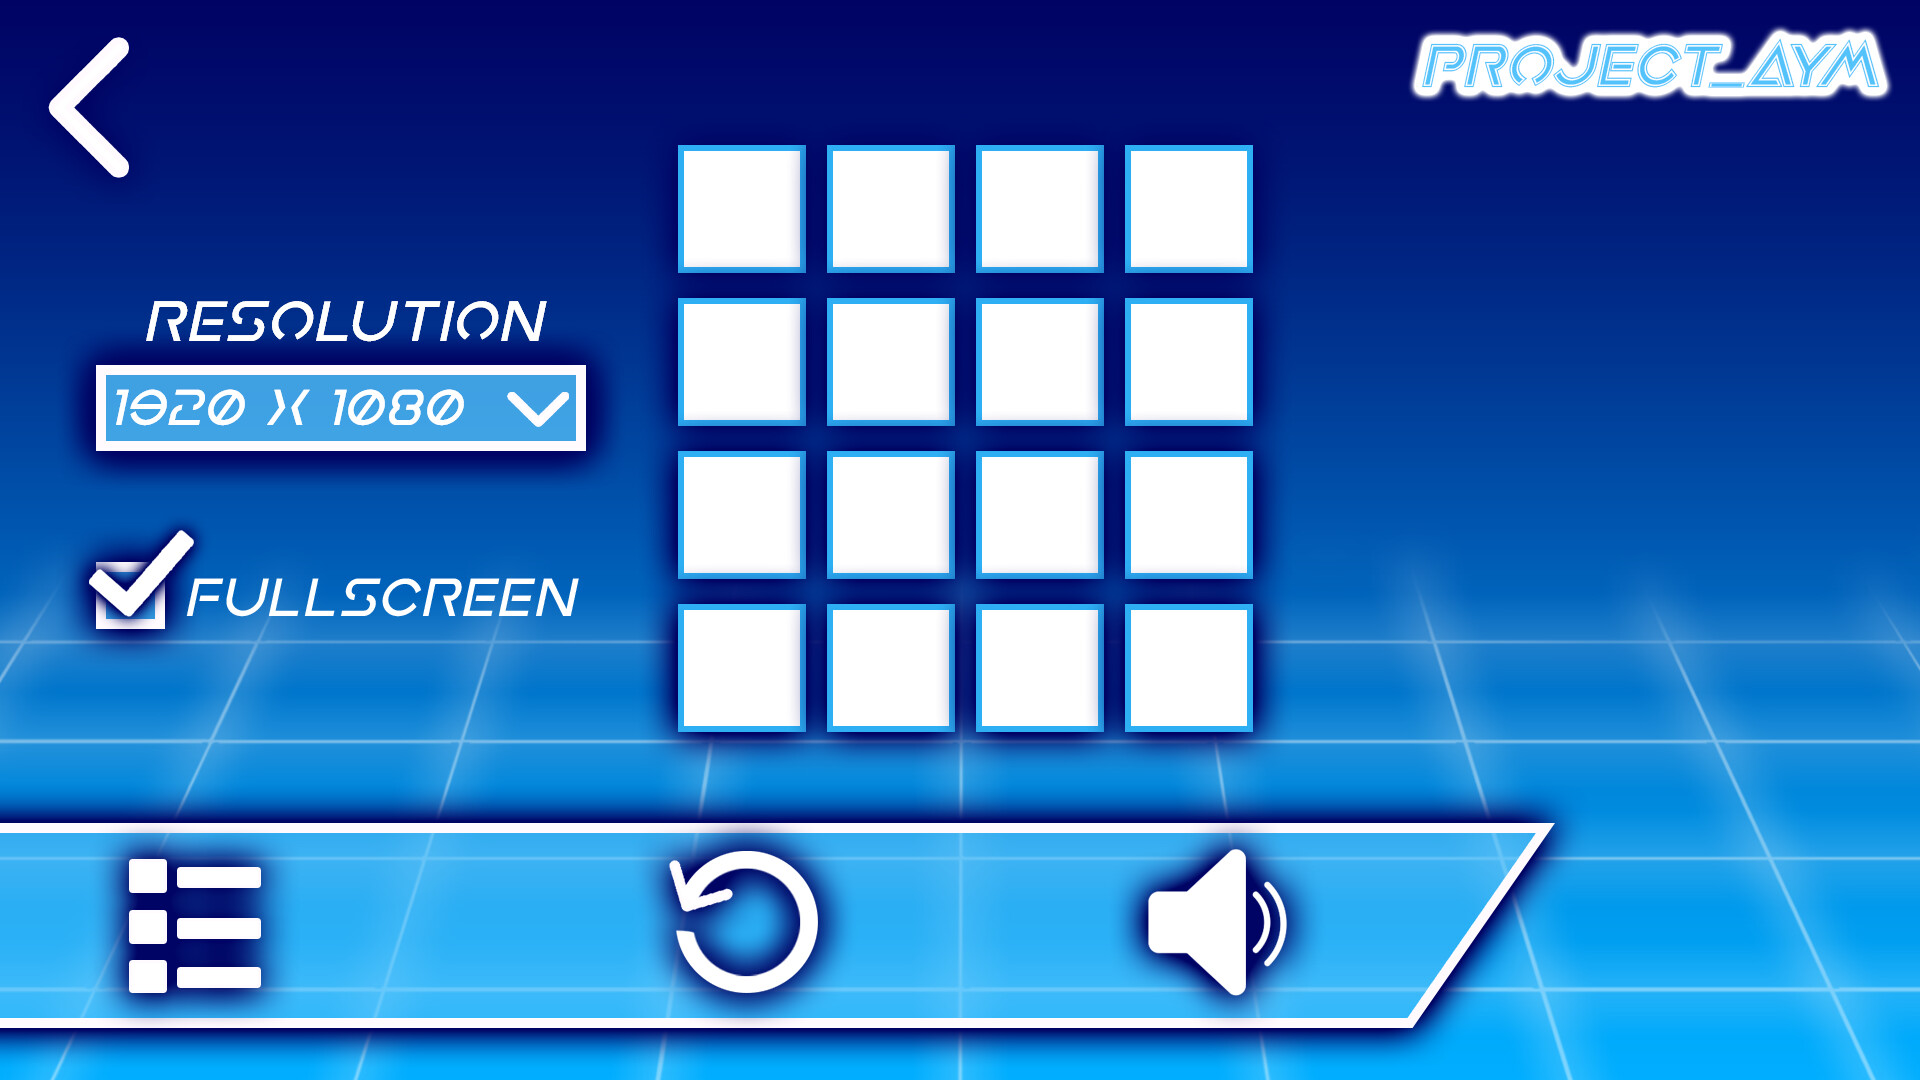 This is the Option menu screen that I designed.